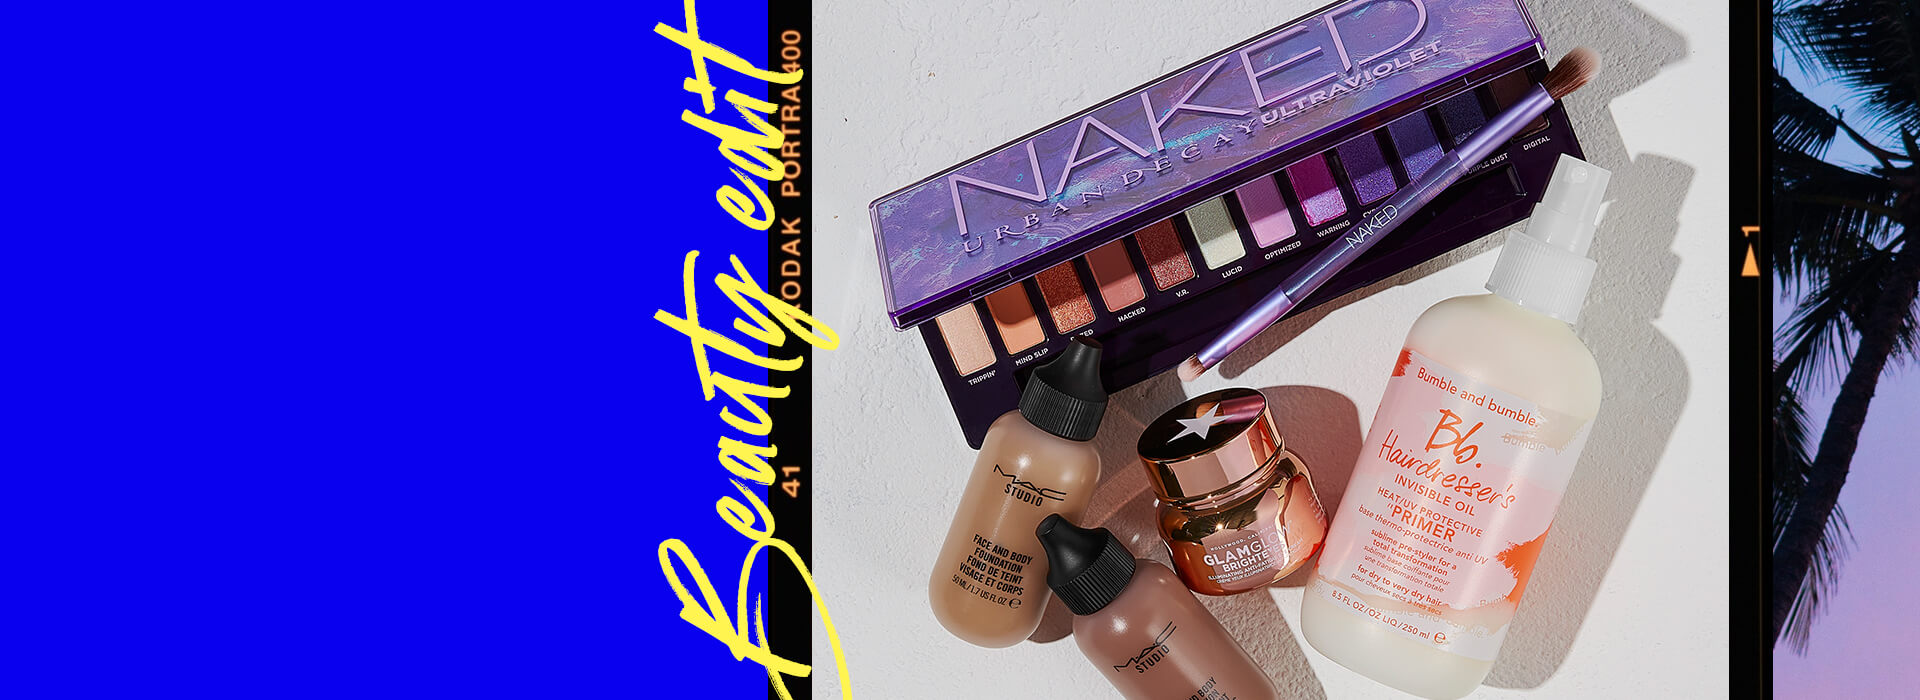 Our influencers have spoken, these are the beauty must-haves of Summer 2020! shop now